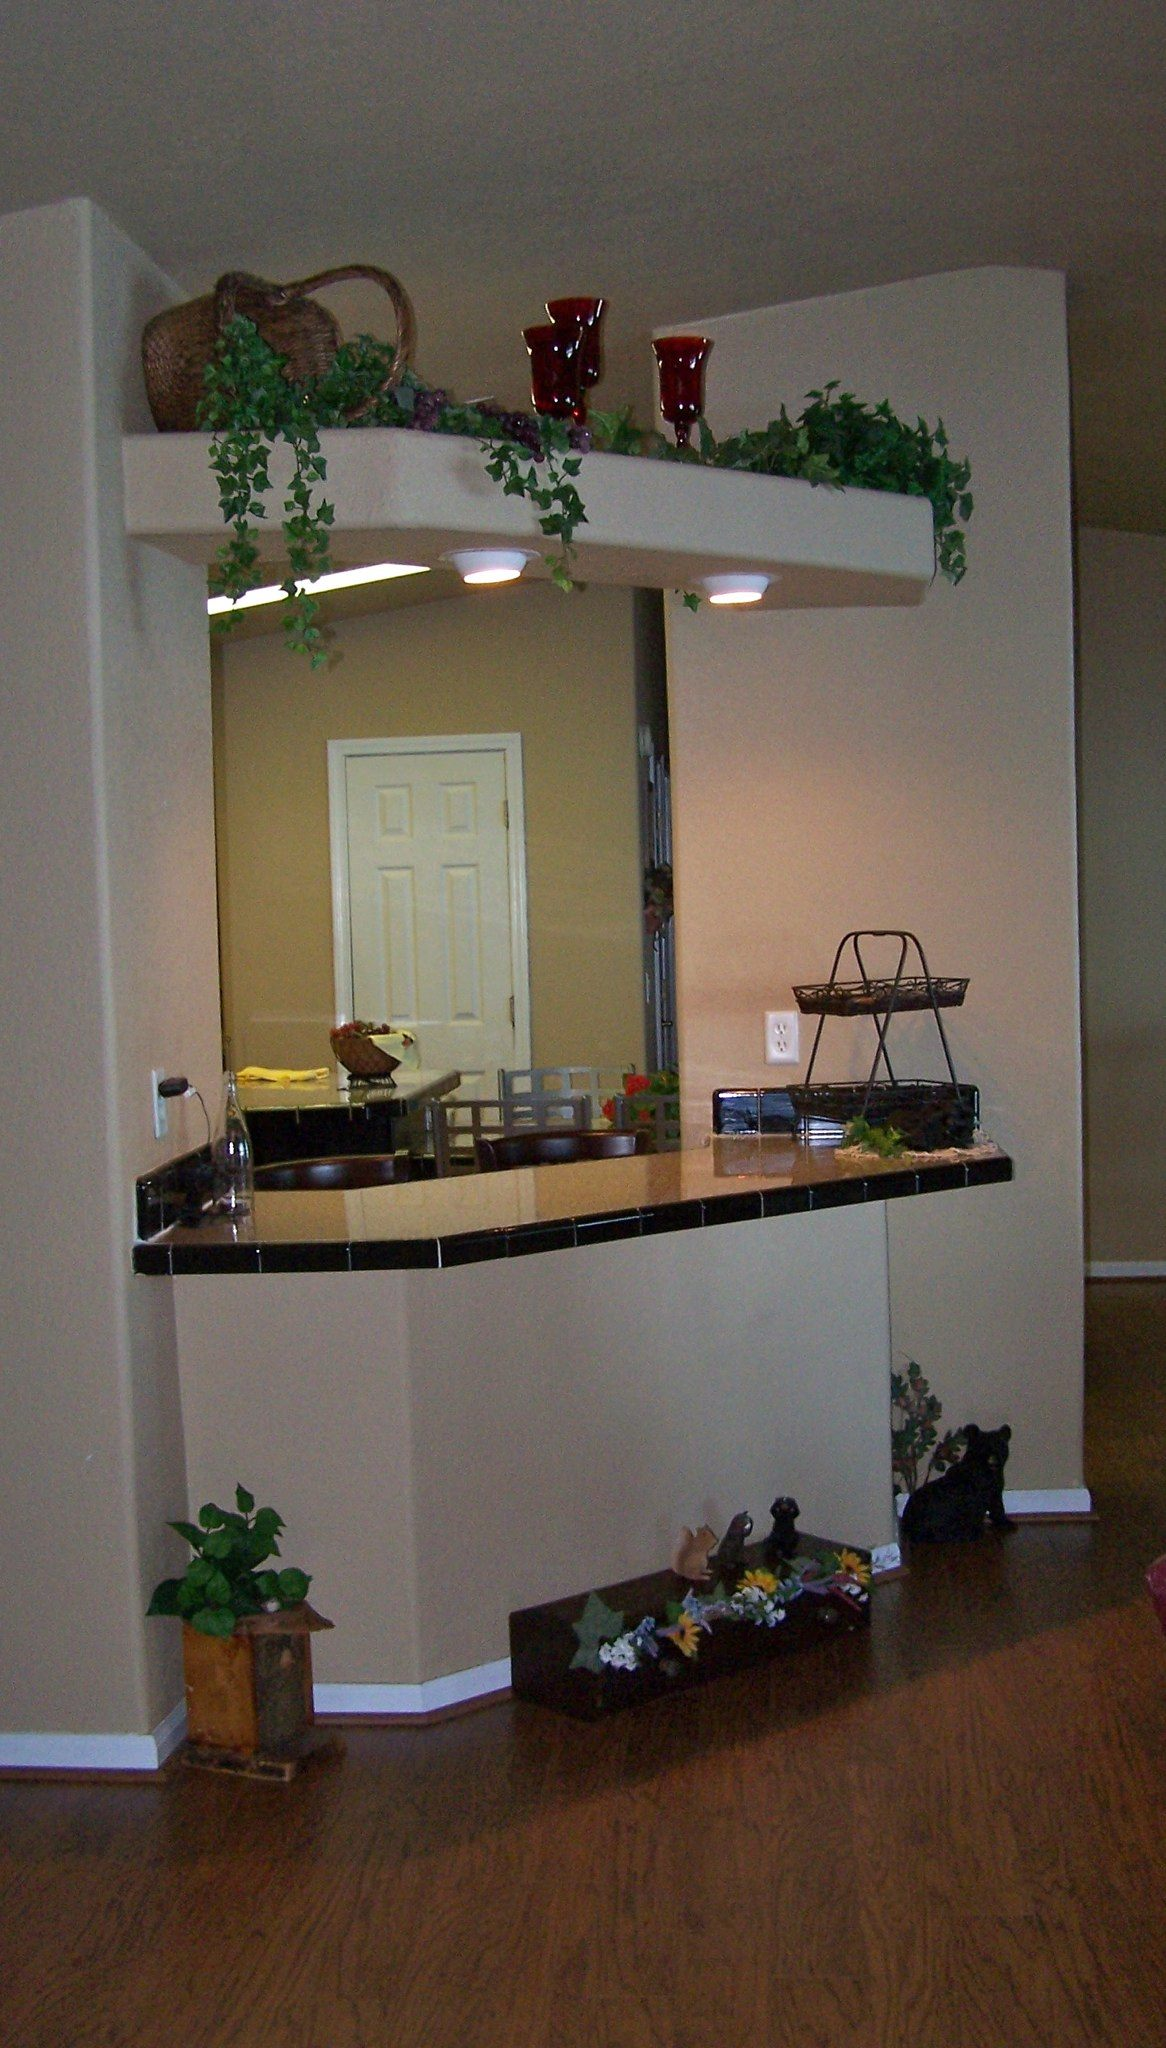 VIEW INTO KITCHEN FROM LIVING ROOM